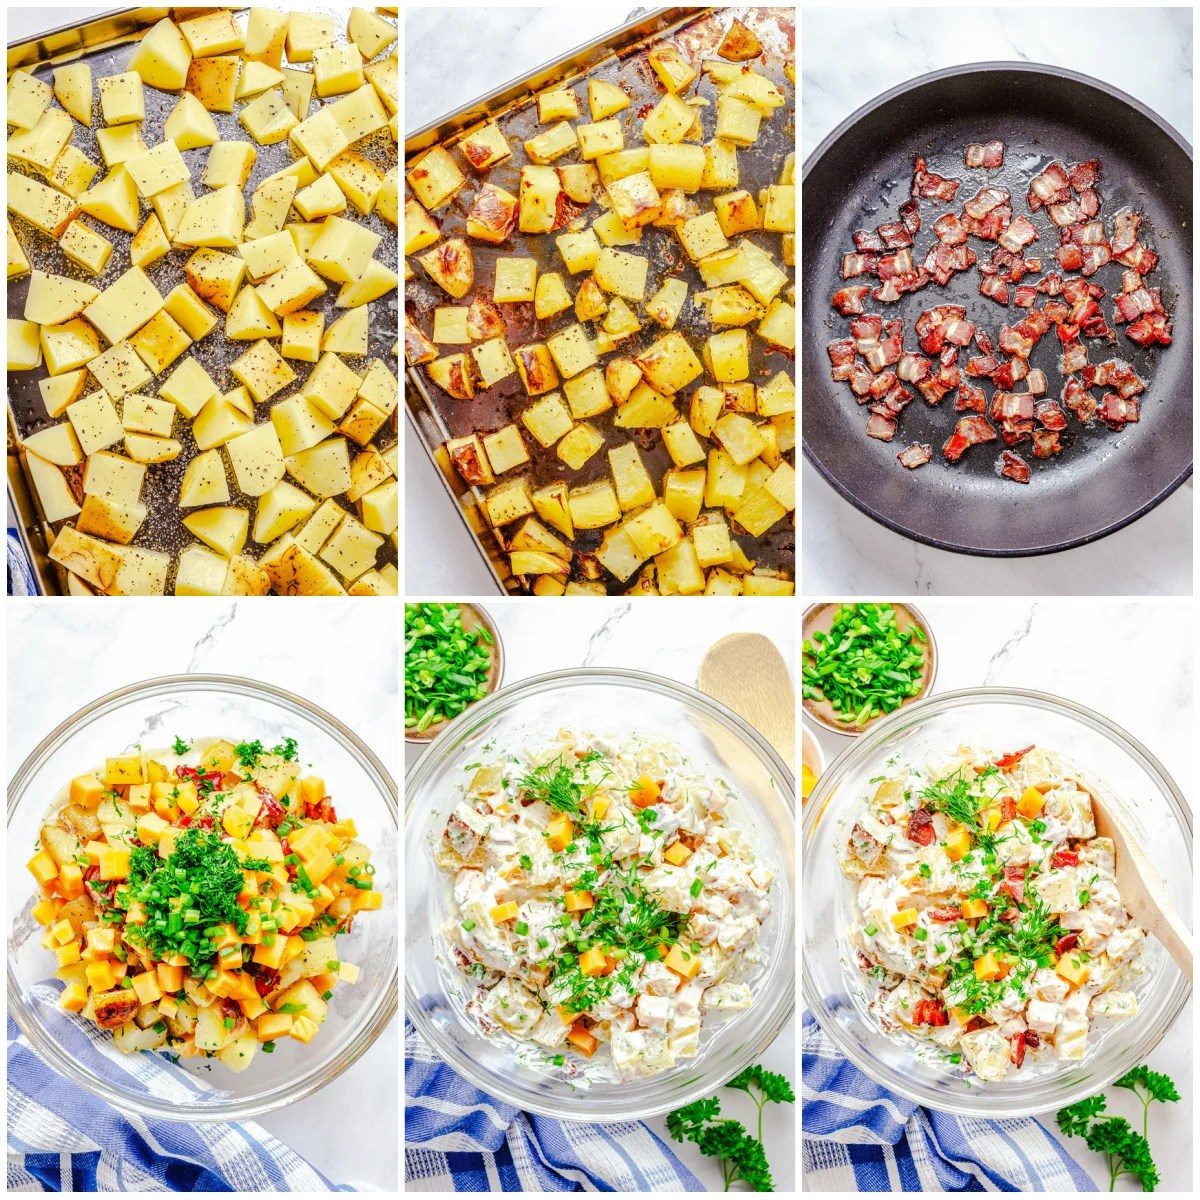 Step by step photos on how to make Bacon Ranch Potato Salad